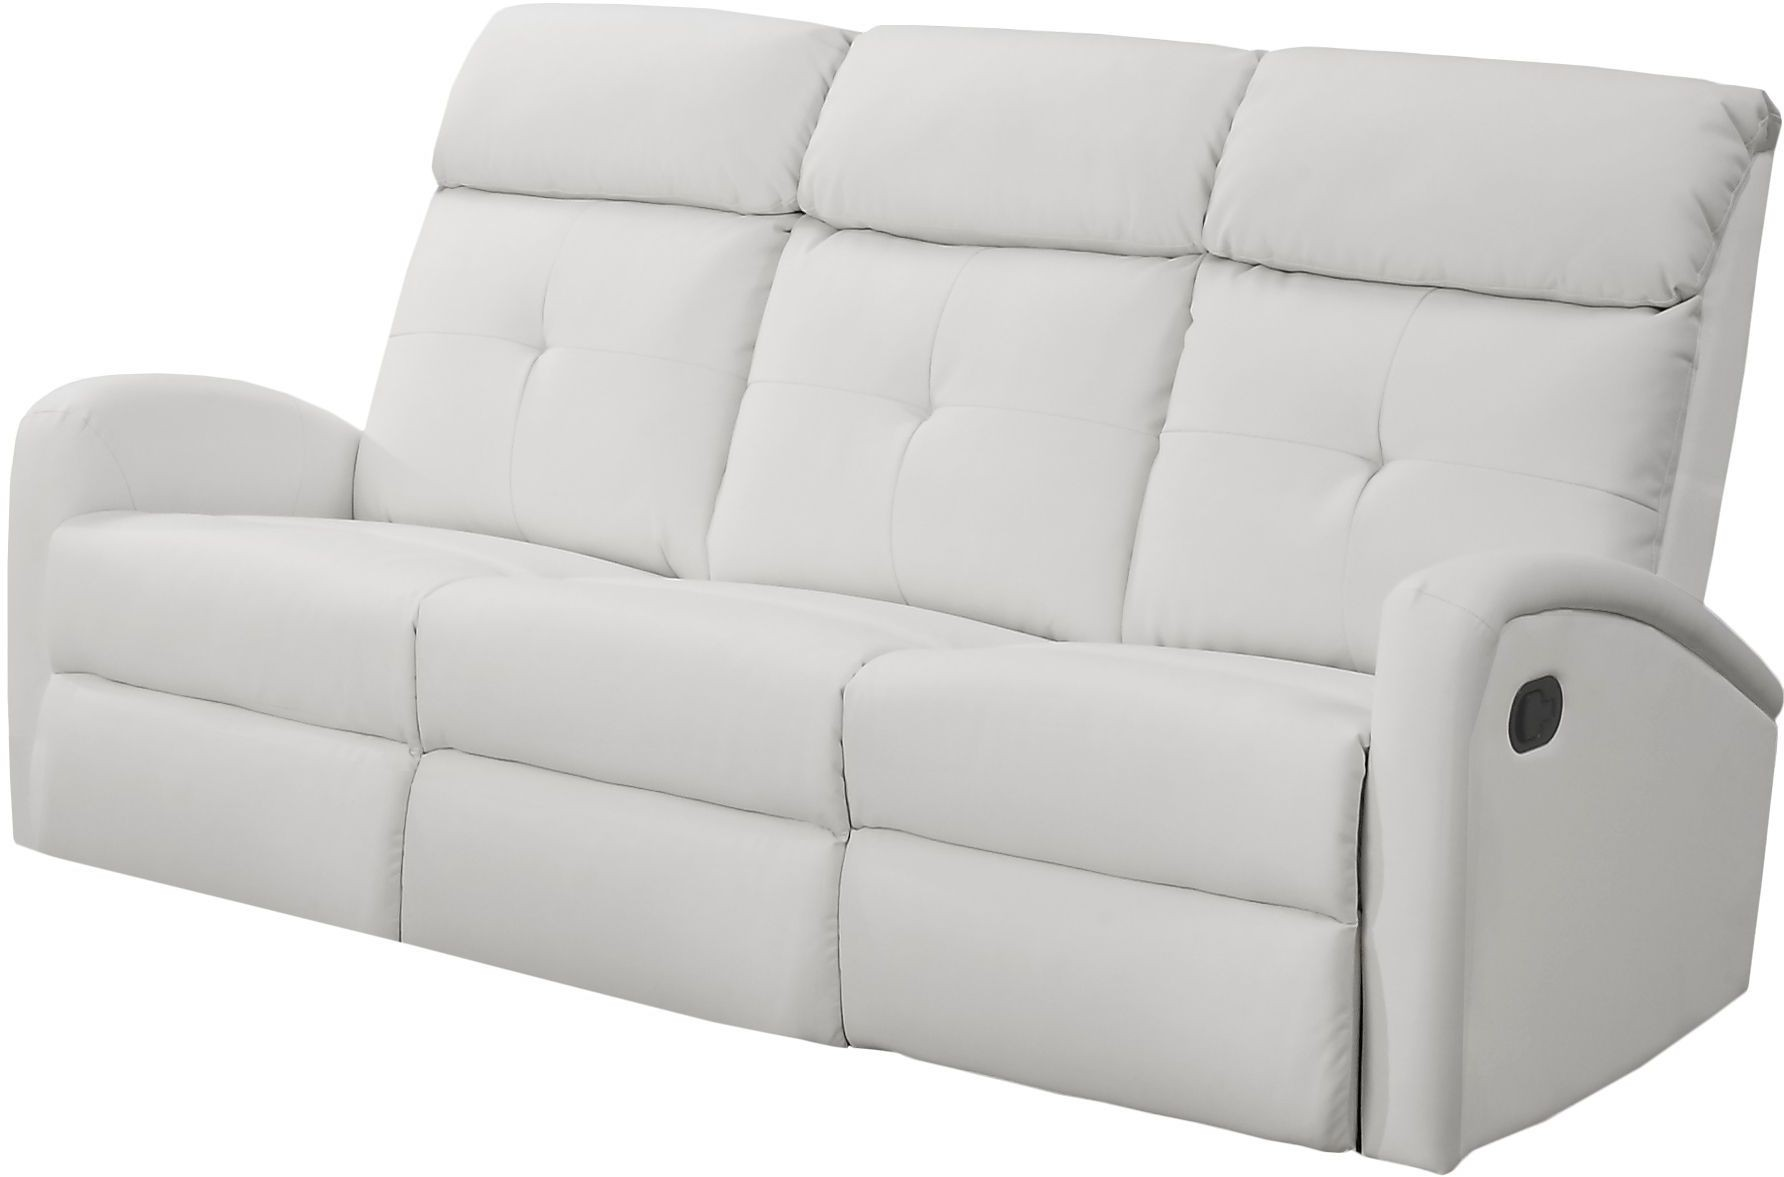 88wh 3 White Bonded Leather Reclining Sofa From Monarch